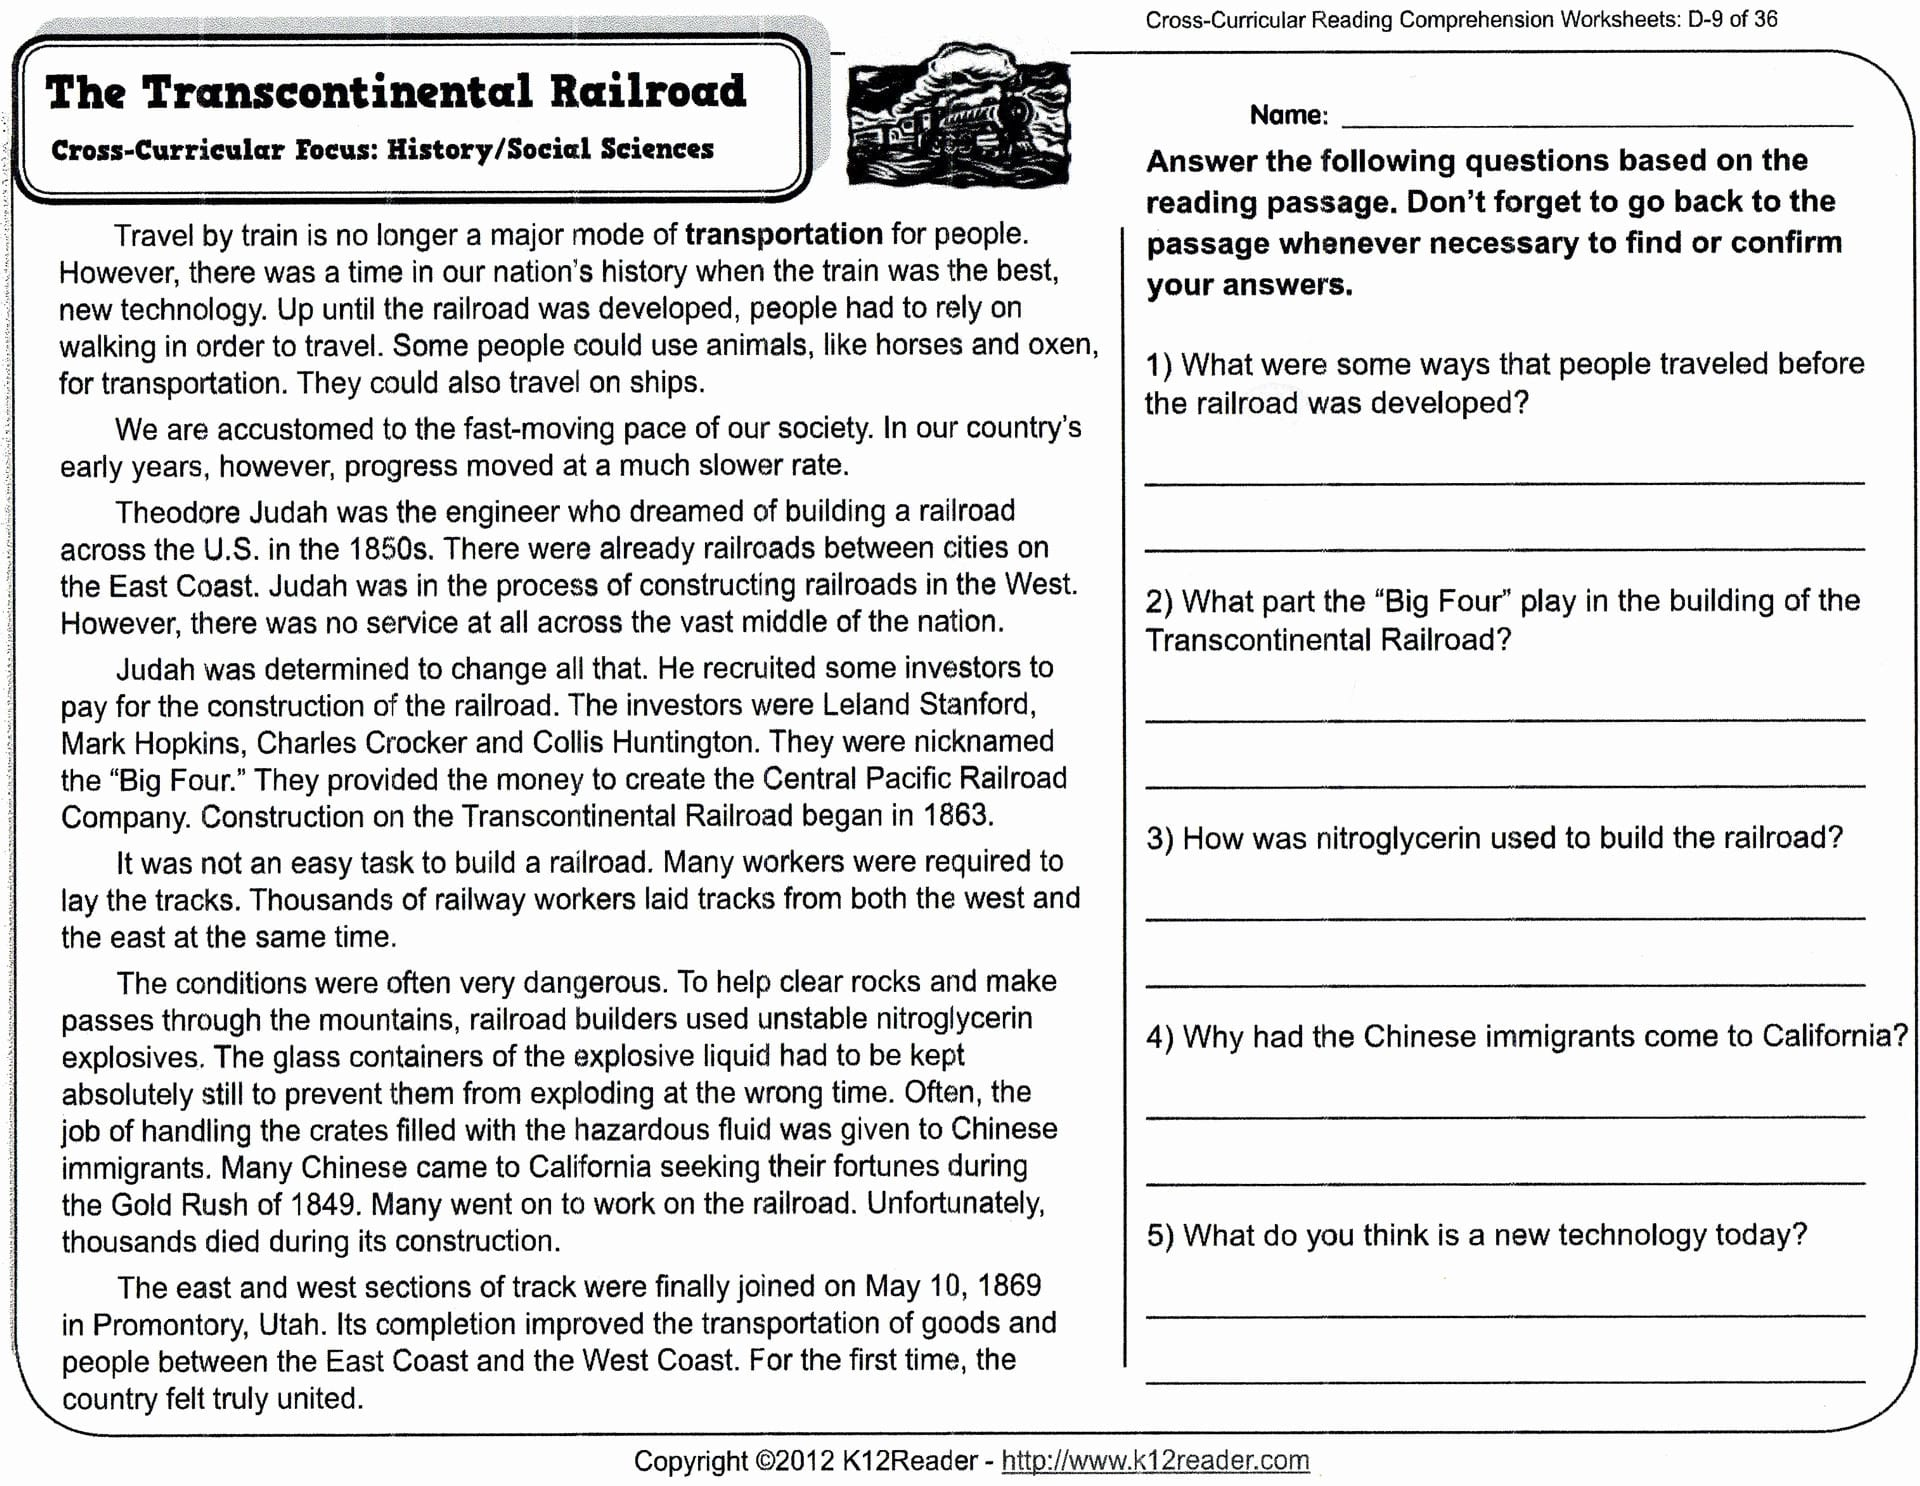 Reading Comprehension Worksheets For 8th Grade Free Report